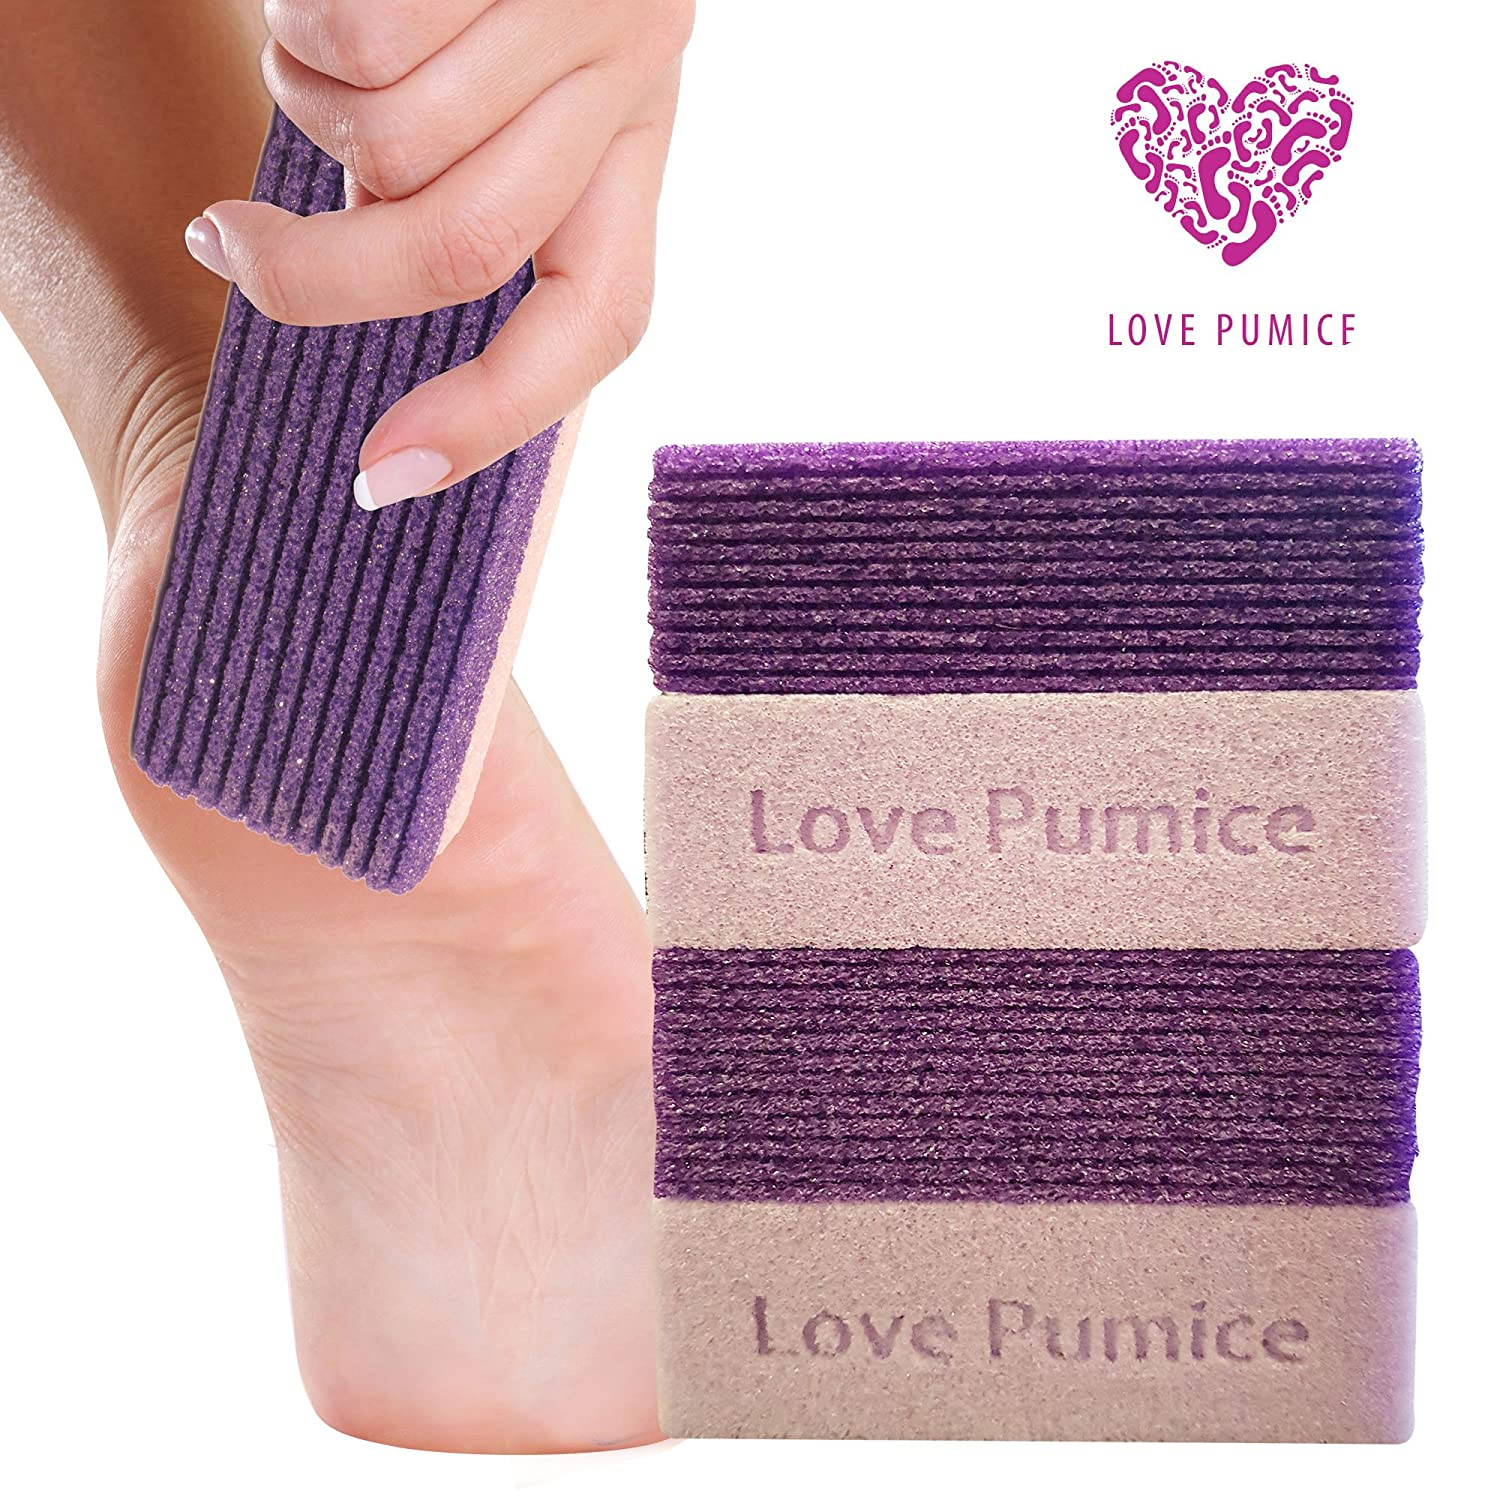 Love Pumice #1 Amazing Pumice Stone (Pack of 4) - Exfoliation Pedicure - Free E-book - Pumice Stone for Feet, Hands and Body - Callus Remover - Treat Your Feet to Some Love Now!!